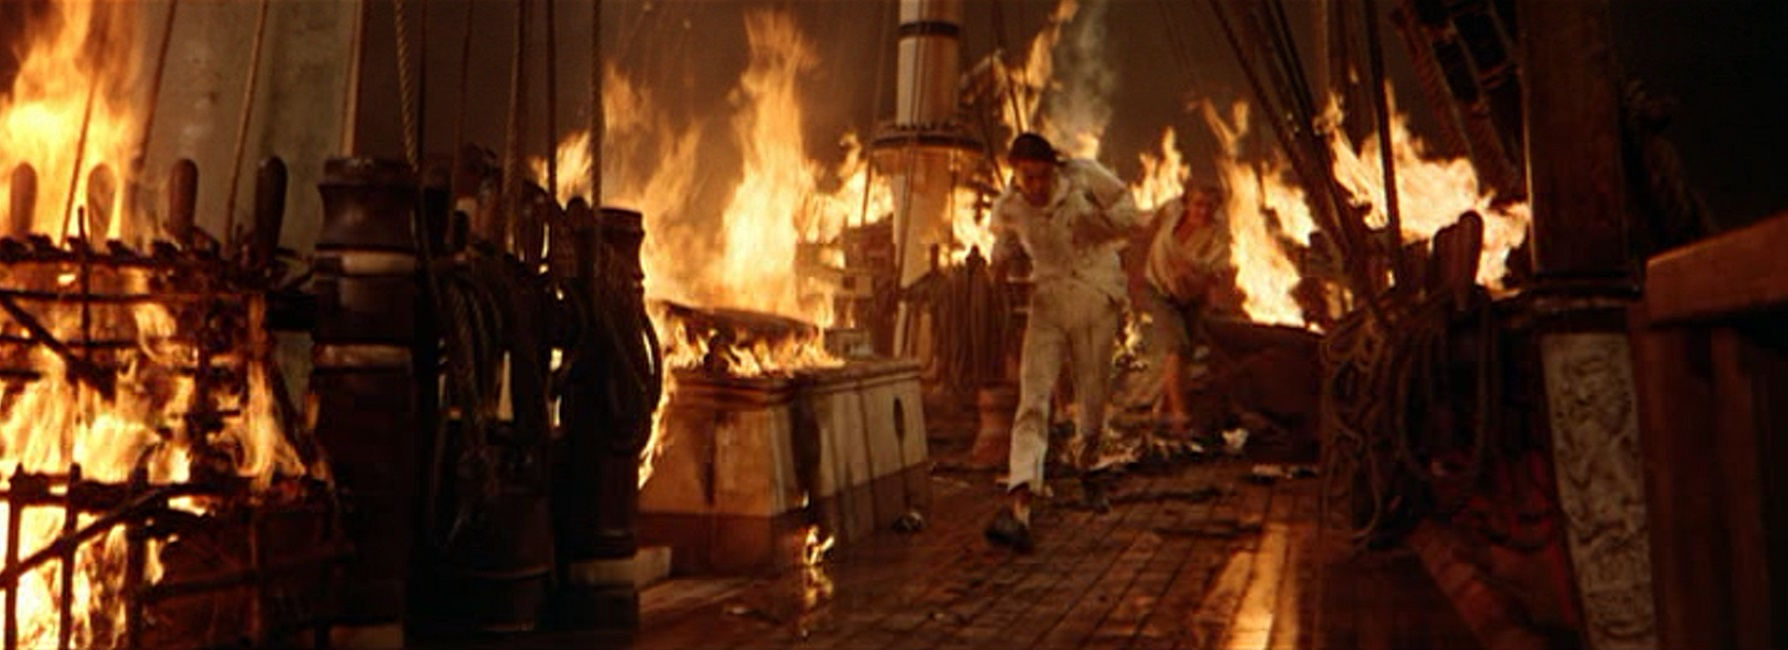 Image result for mutiny on the bounty 1962 fire